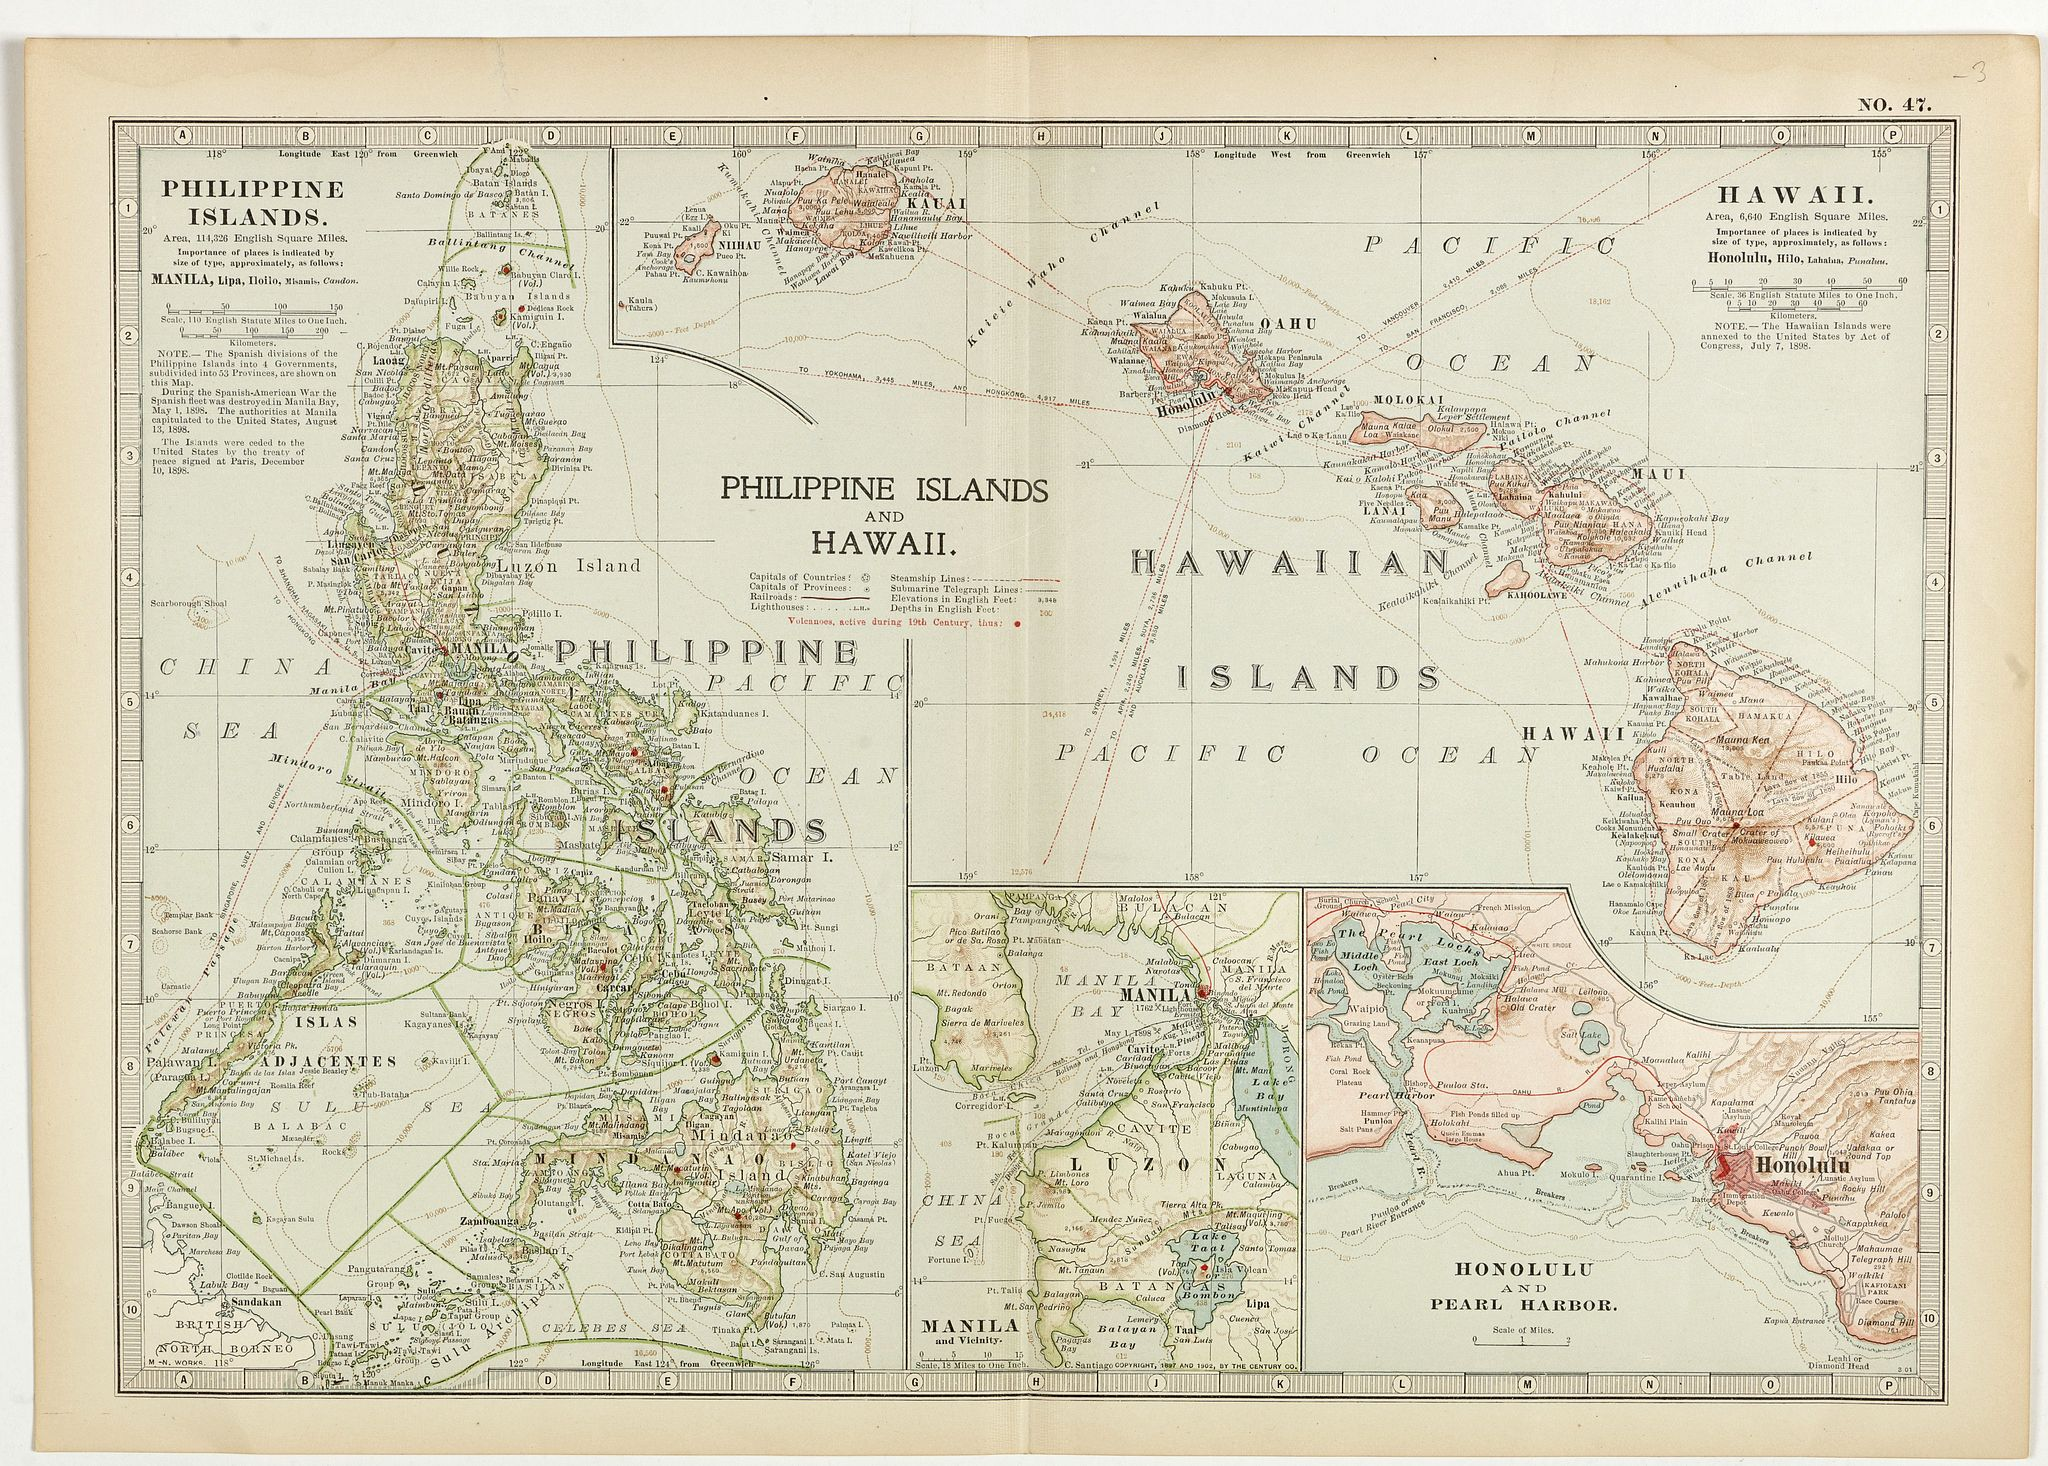 ENCYCLOPEDIA BRIANNICA. -  Philippine Islands and Hawaii.